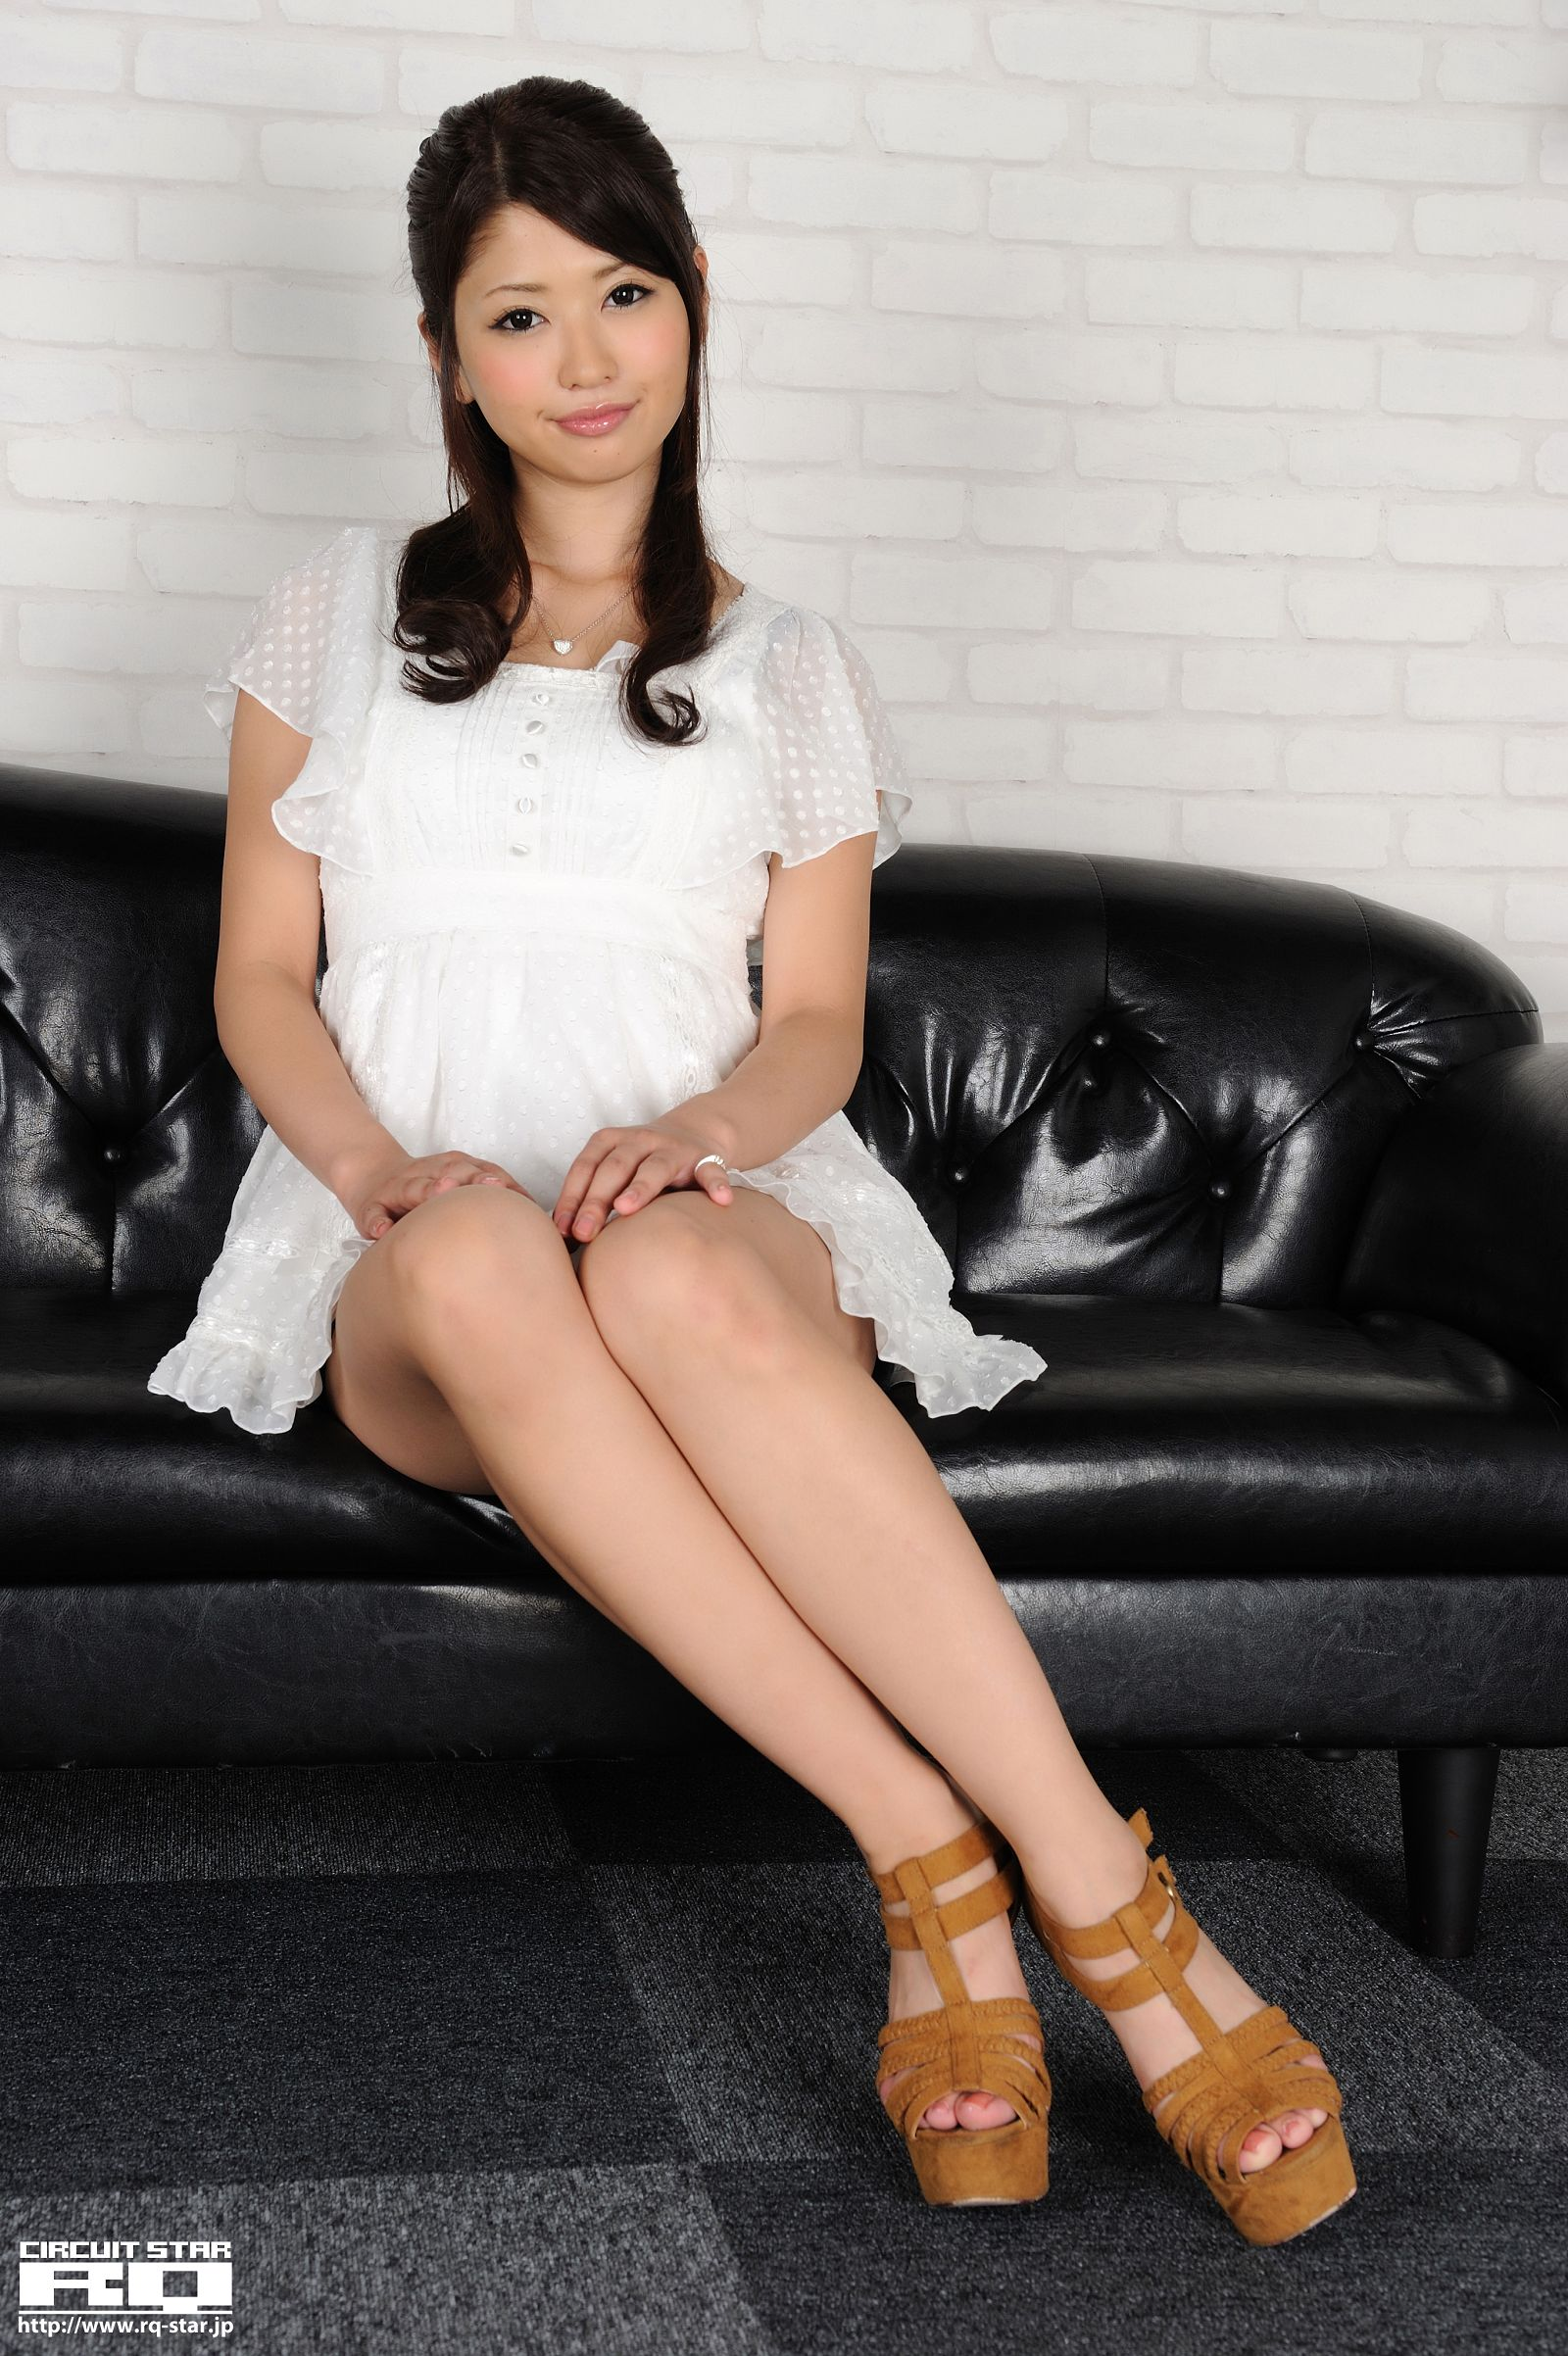 [RQ STAR美女] NO.00529 Hitomi Nose 能勢ひとみ Private Dress[72P] RQ STAR 第1张